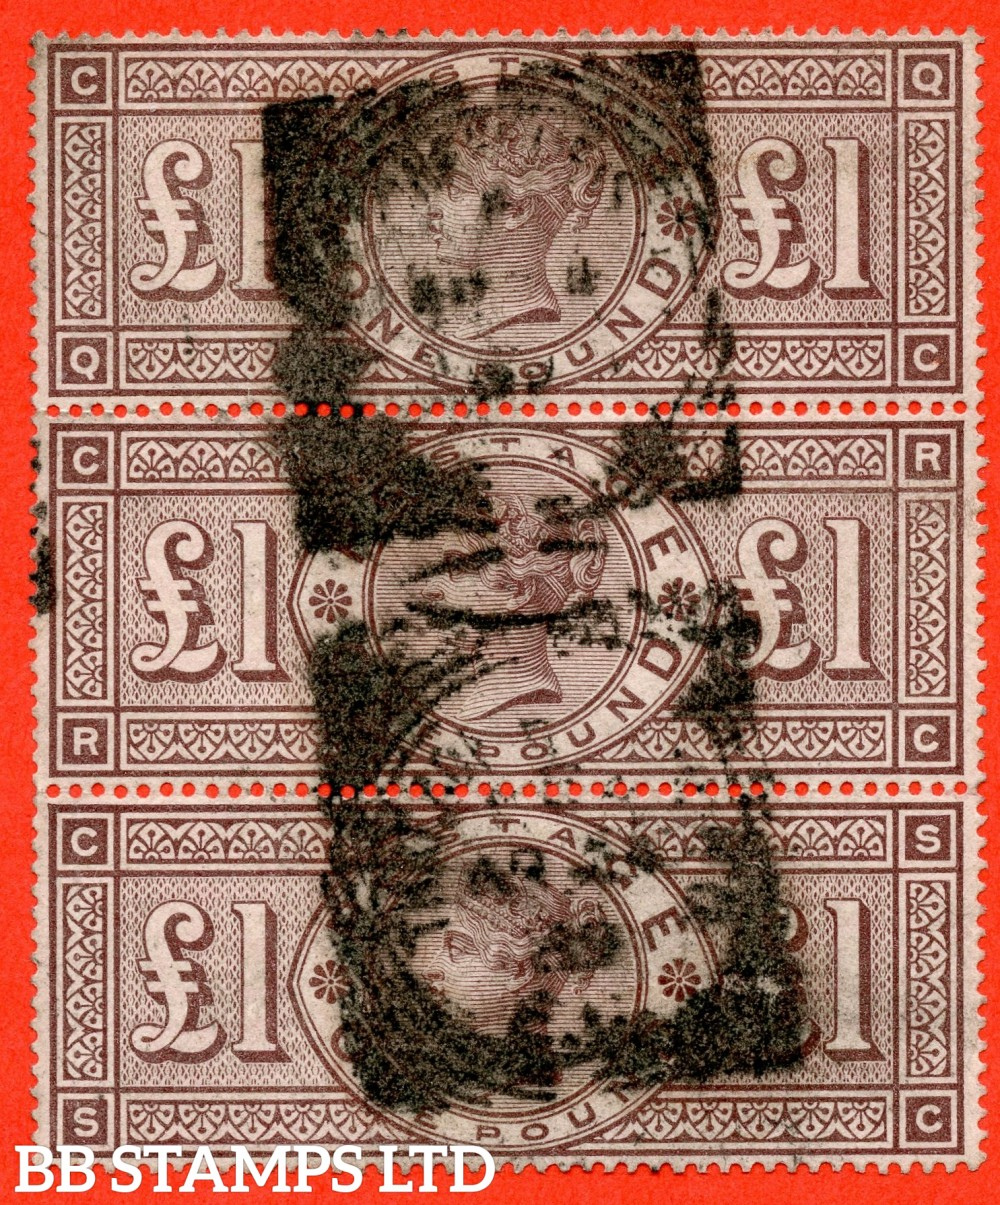 """SG. 186. K16. """" QC RC SC """". £1.00 Brown - Lilac. A good used vertical strip of 3. A RARE multiple."""